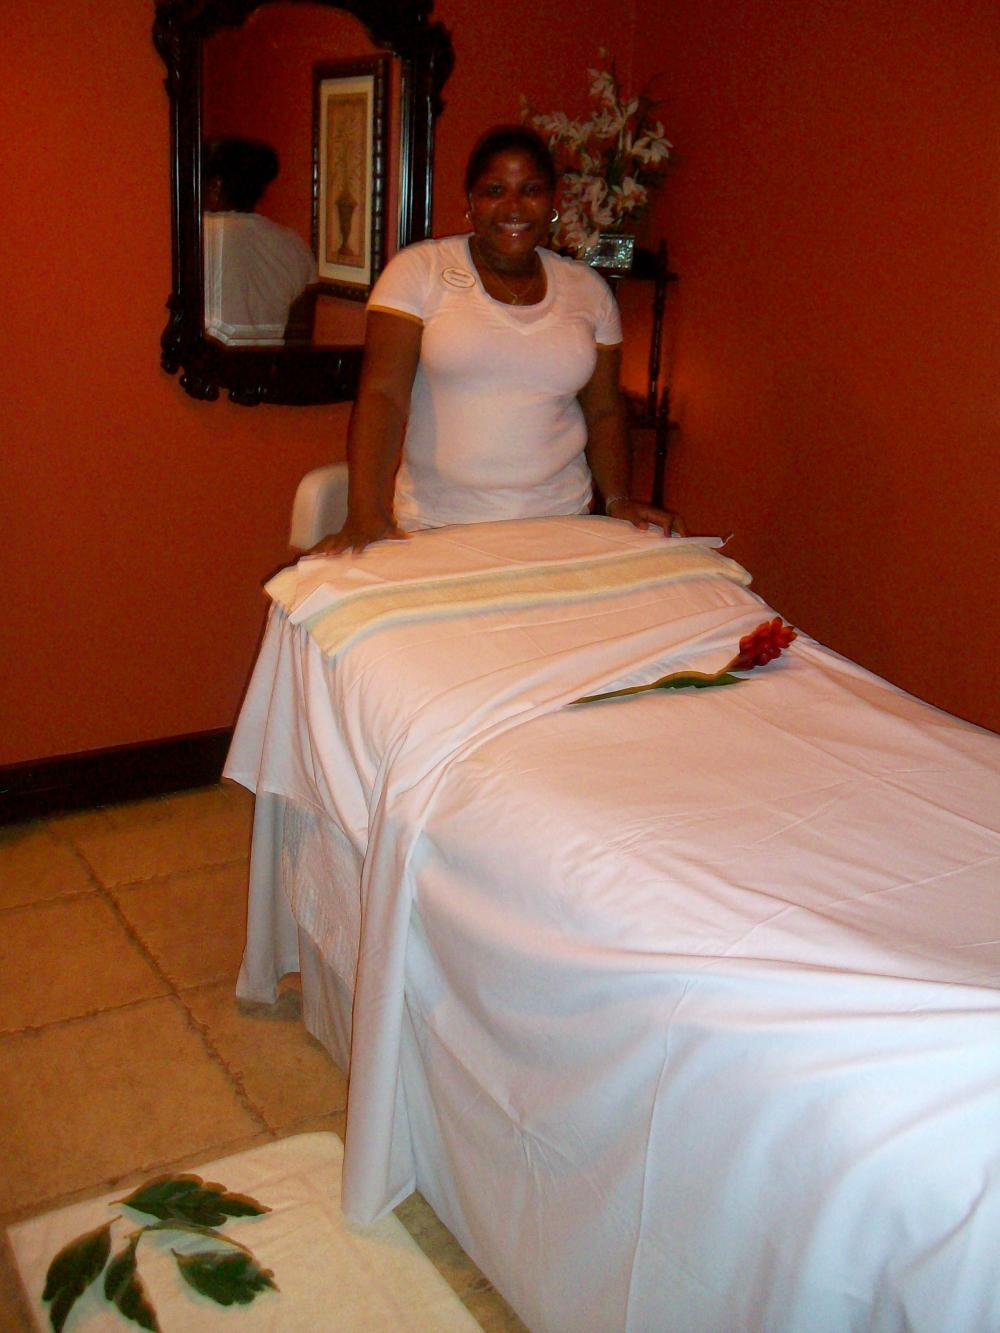 Massage therapist Primrose before our appointment.